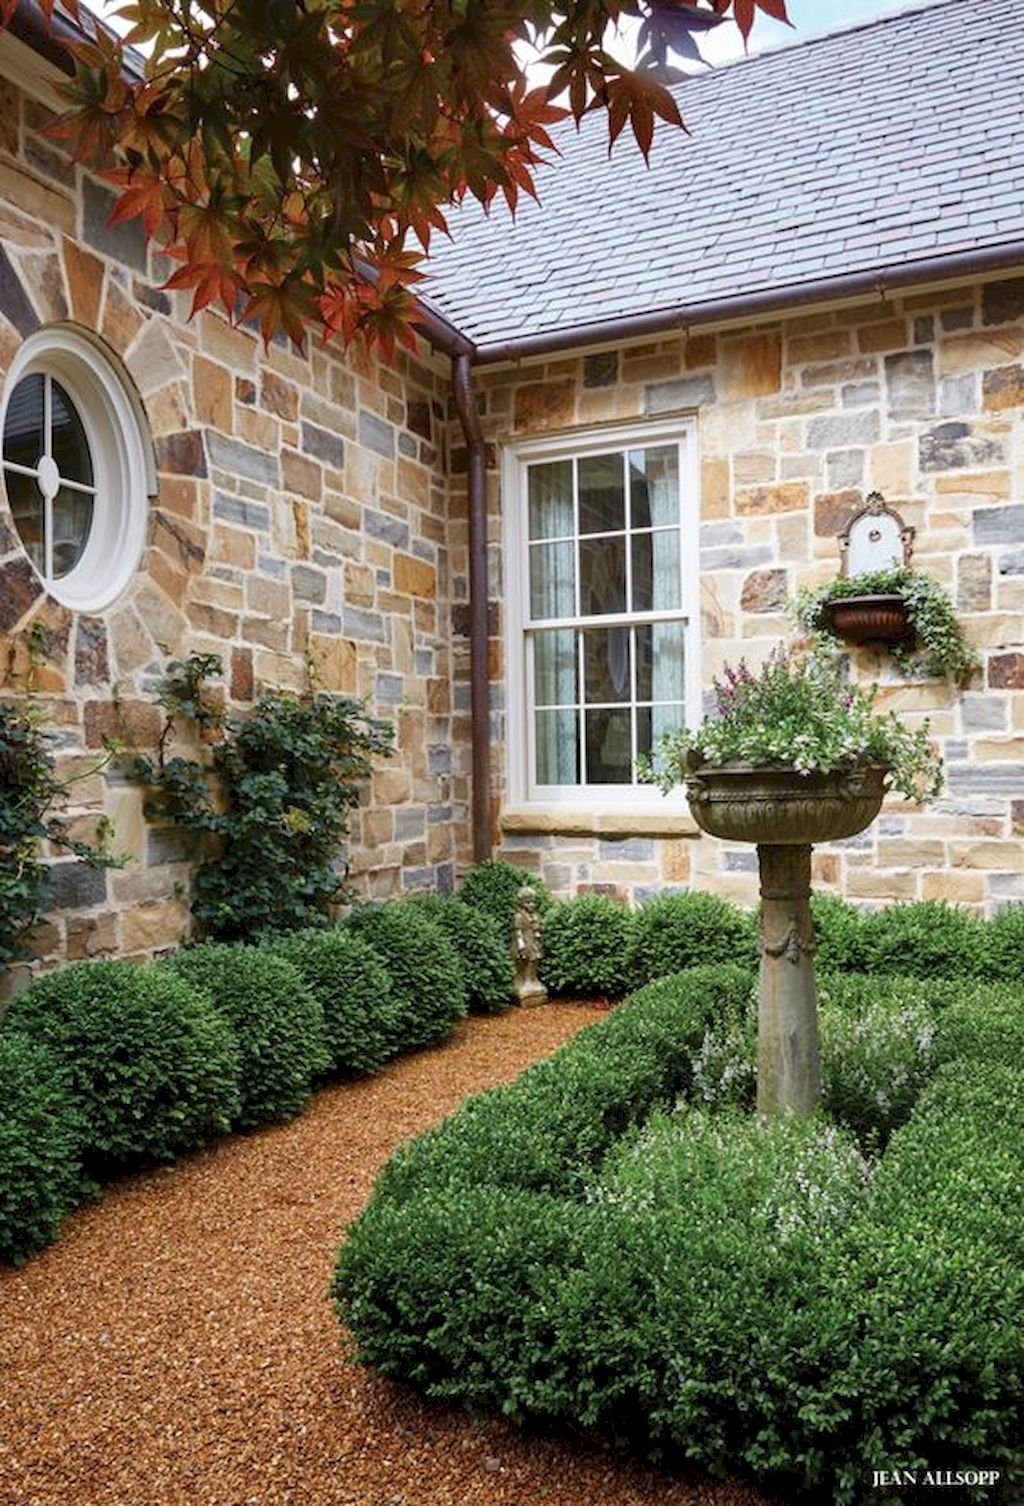 55 stunning side yard garden landscaping ideas side yard on beautiful backyard garden design ideas and remodel create your extraordinary garden id=20565